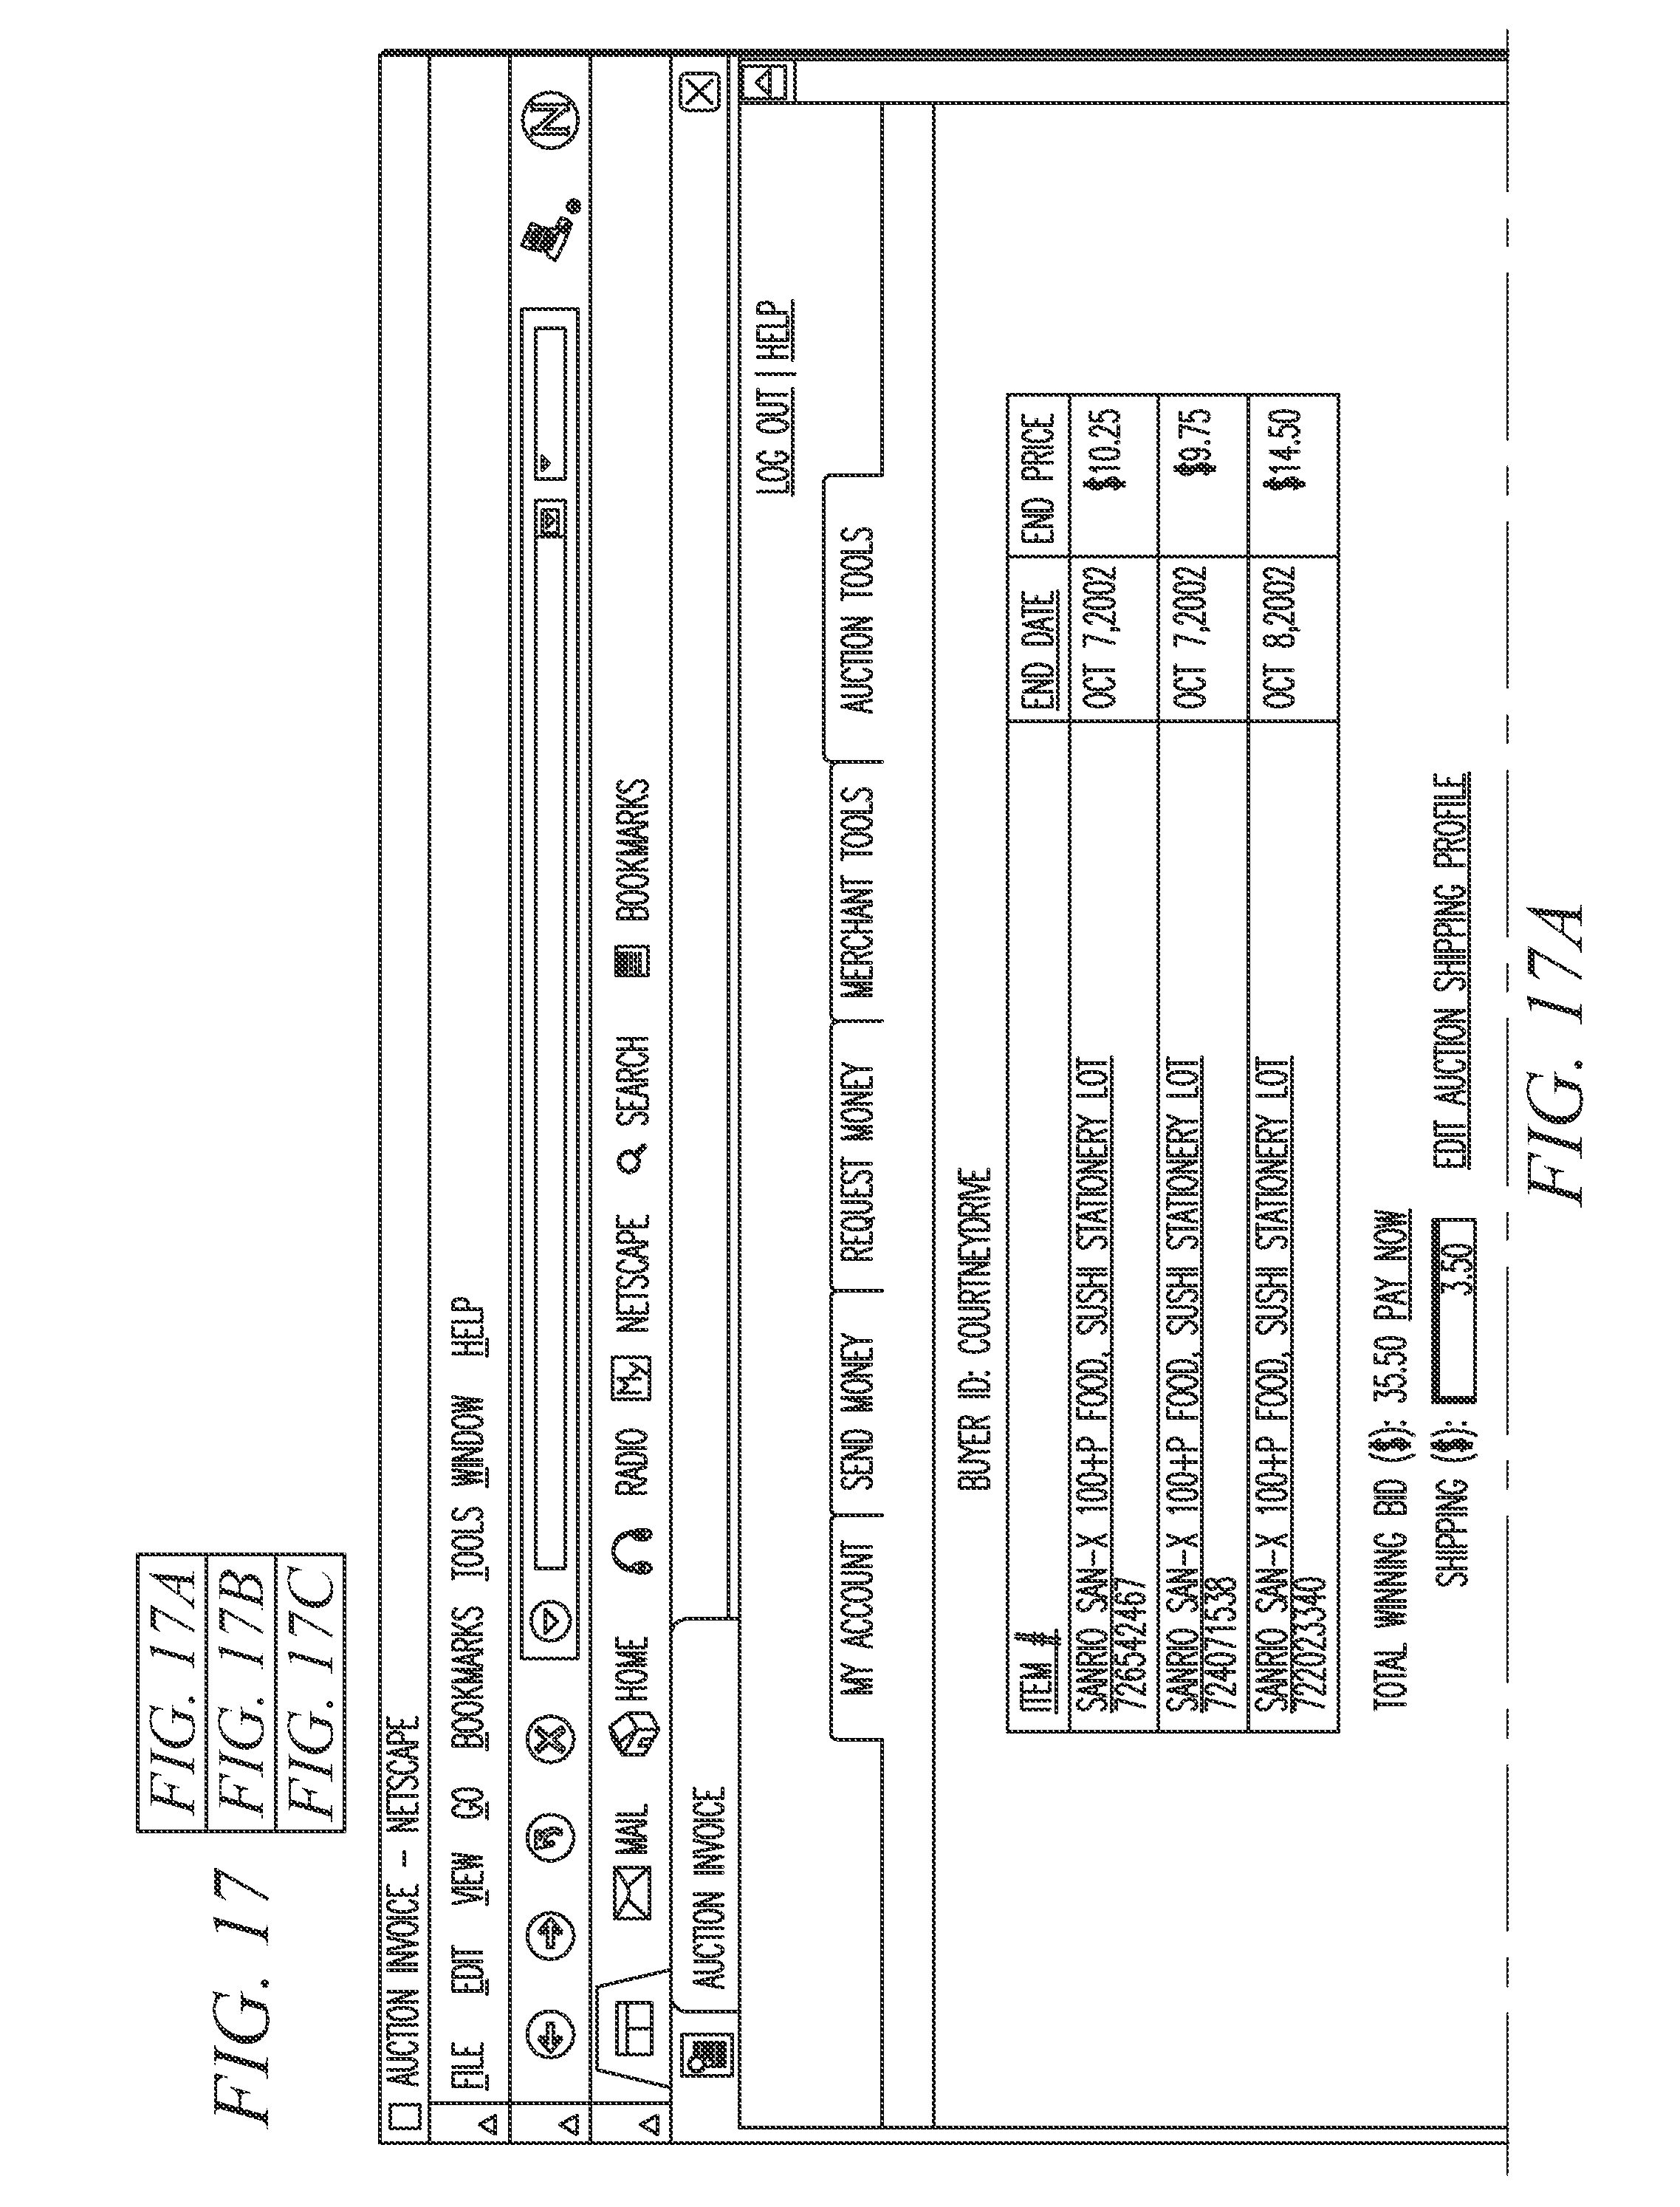 Excel 2007 Invoice Template Excel Patent Us  Invoicing System  Google Patents Shopping Receipt Template with Aia Invoicing Excel Patent Drawing Vehicle Tax Receipt Excel